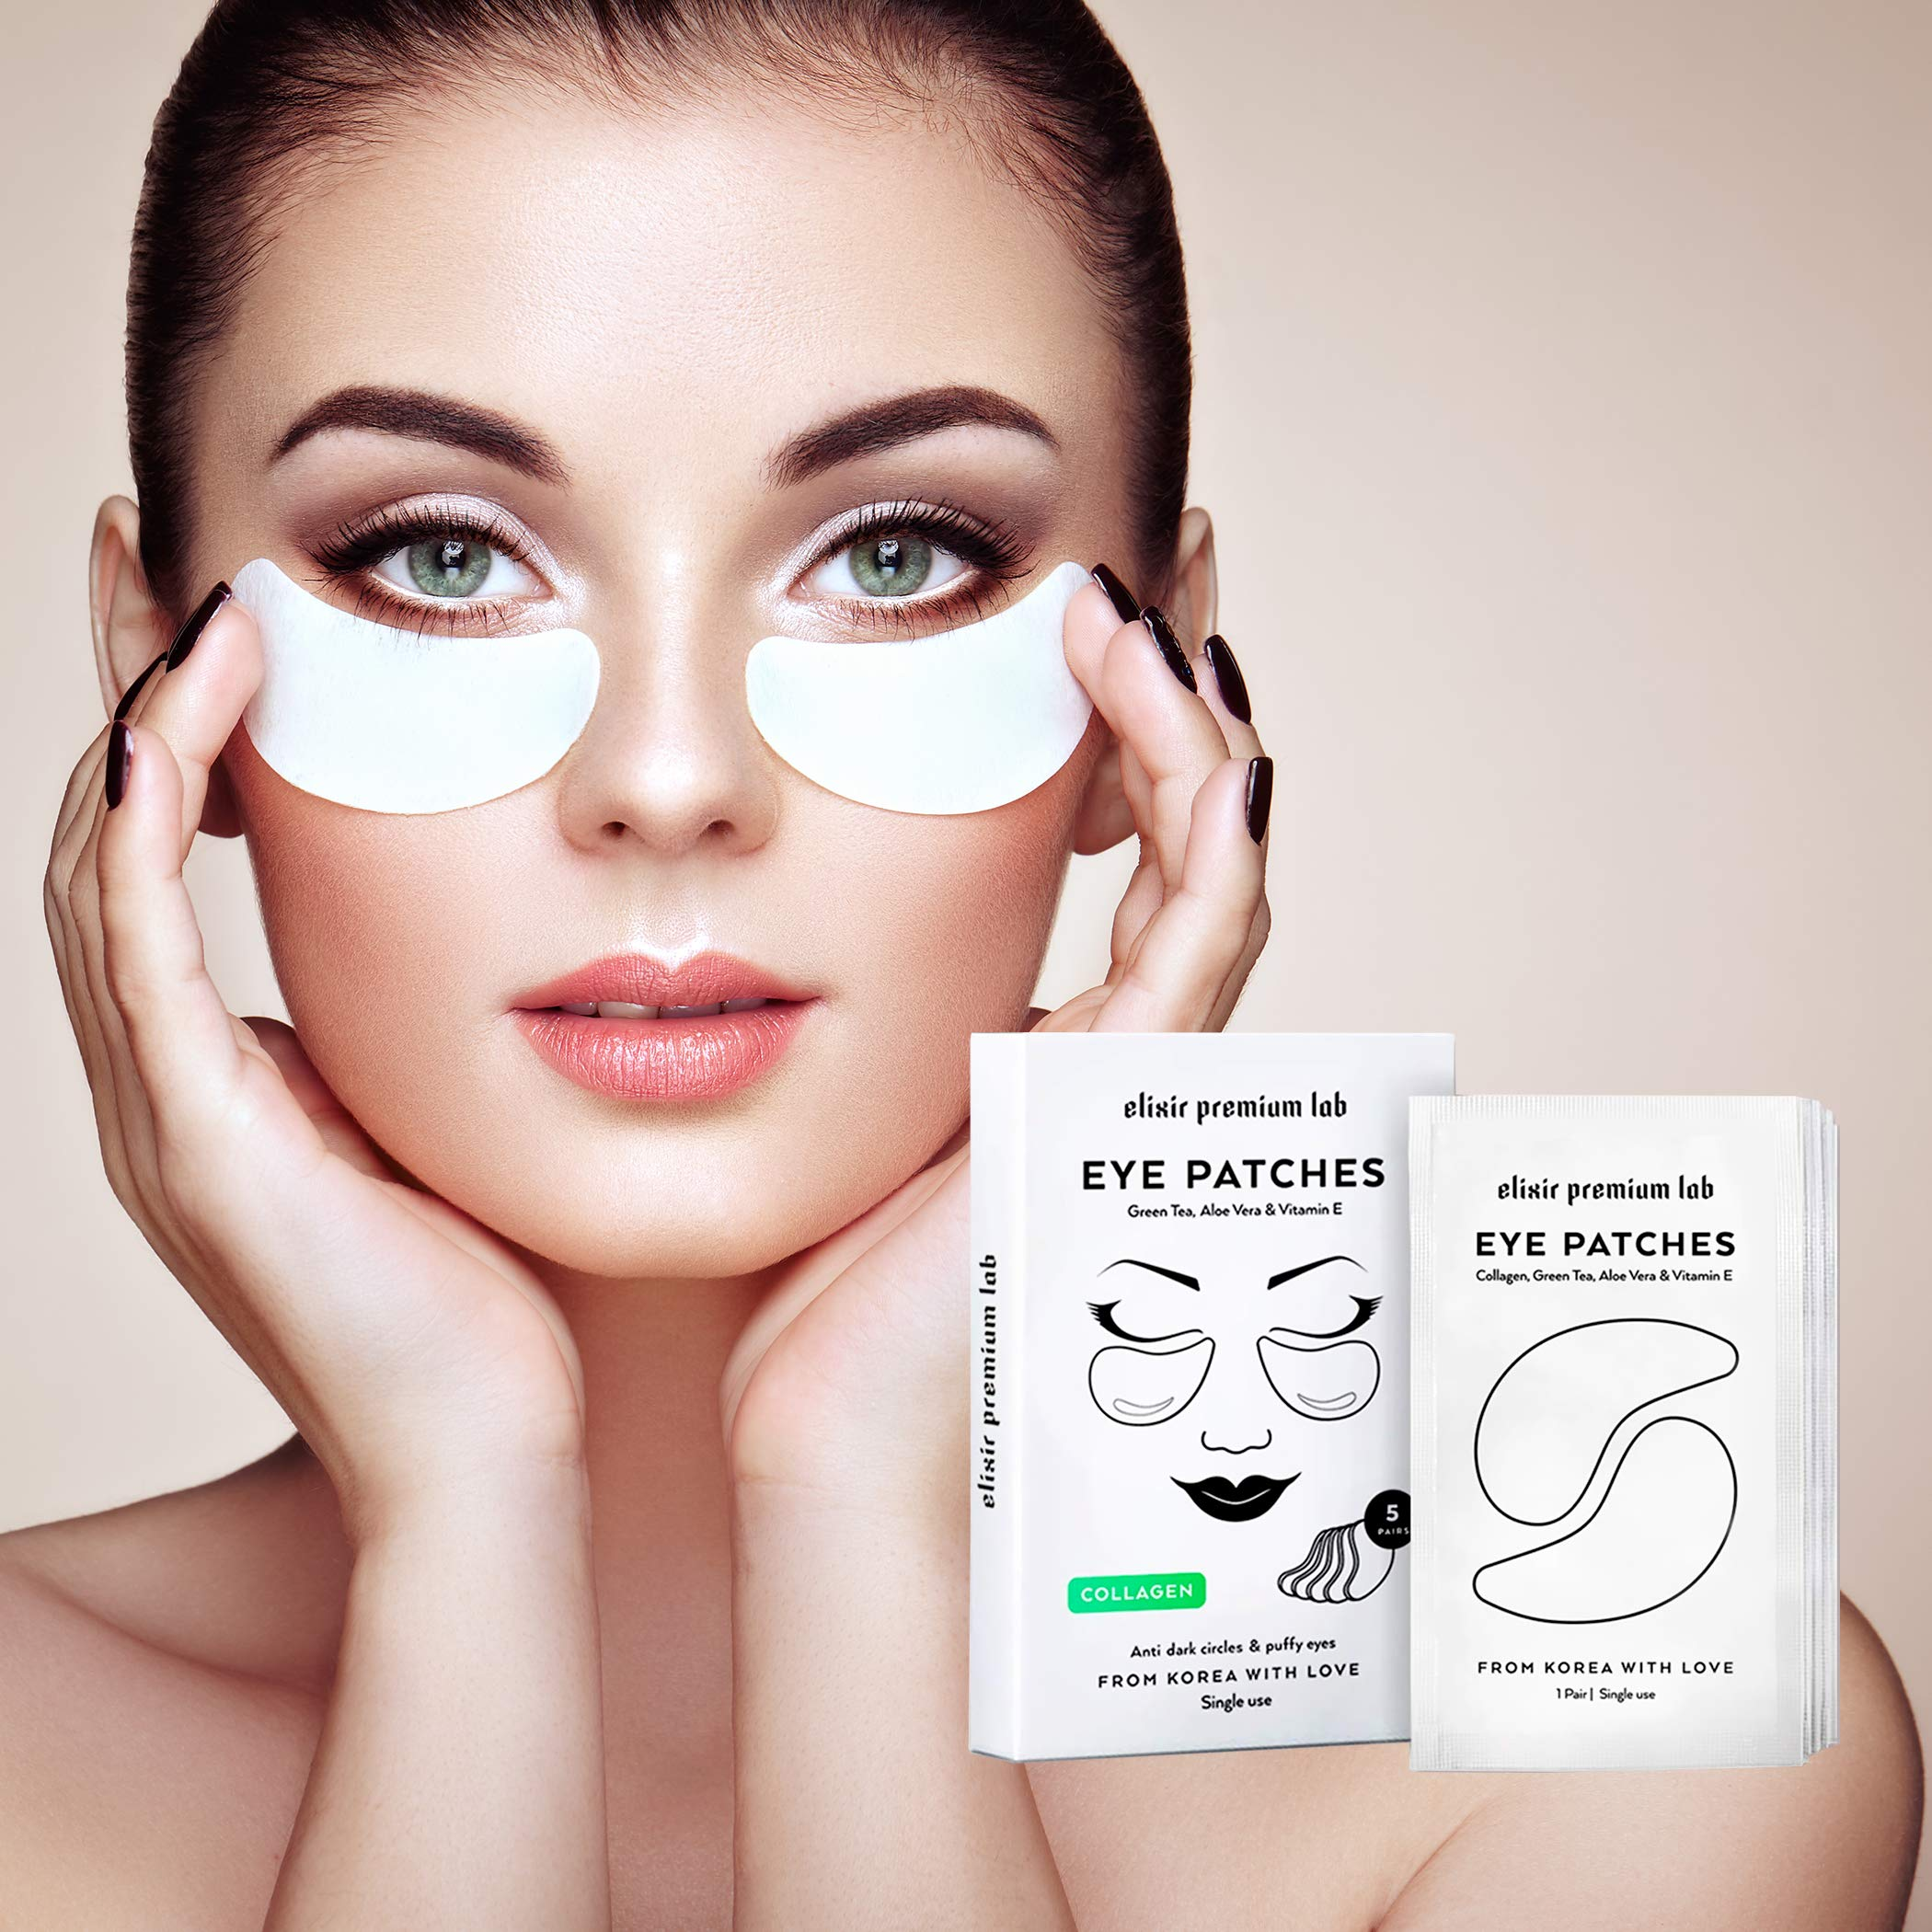 Collagen Eye Patches - Moisturizing Under Eye Pads - Anti Puffiness & Dark Circles Spa Treatment - Best Hydrogel Eye Moisturizer for Women & Men - Gel Masks for Dry Skin Under Eye Zone, 5 Pairs by Elixir Premium Lab